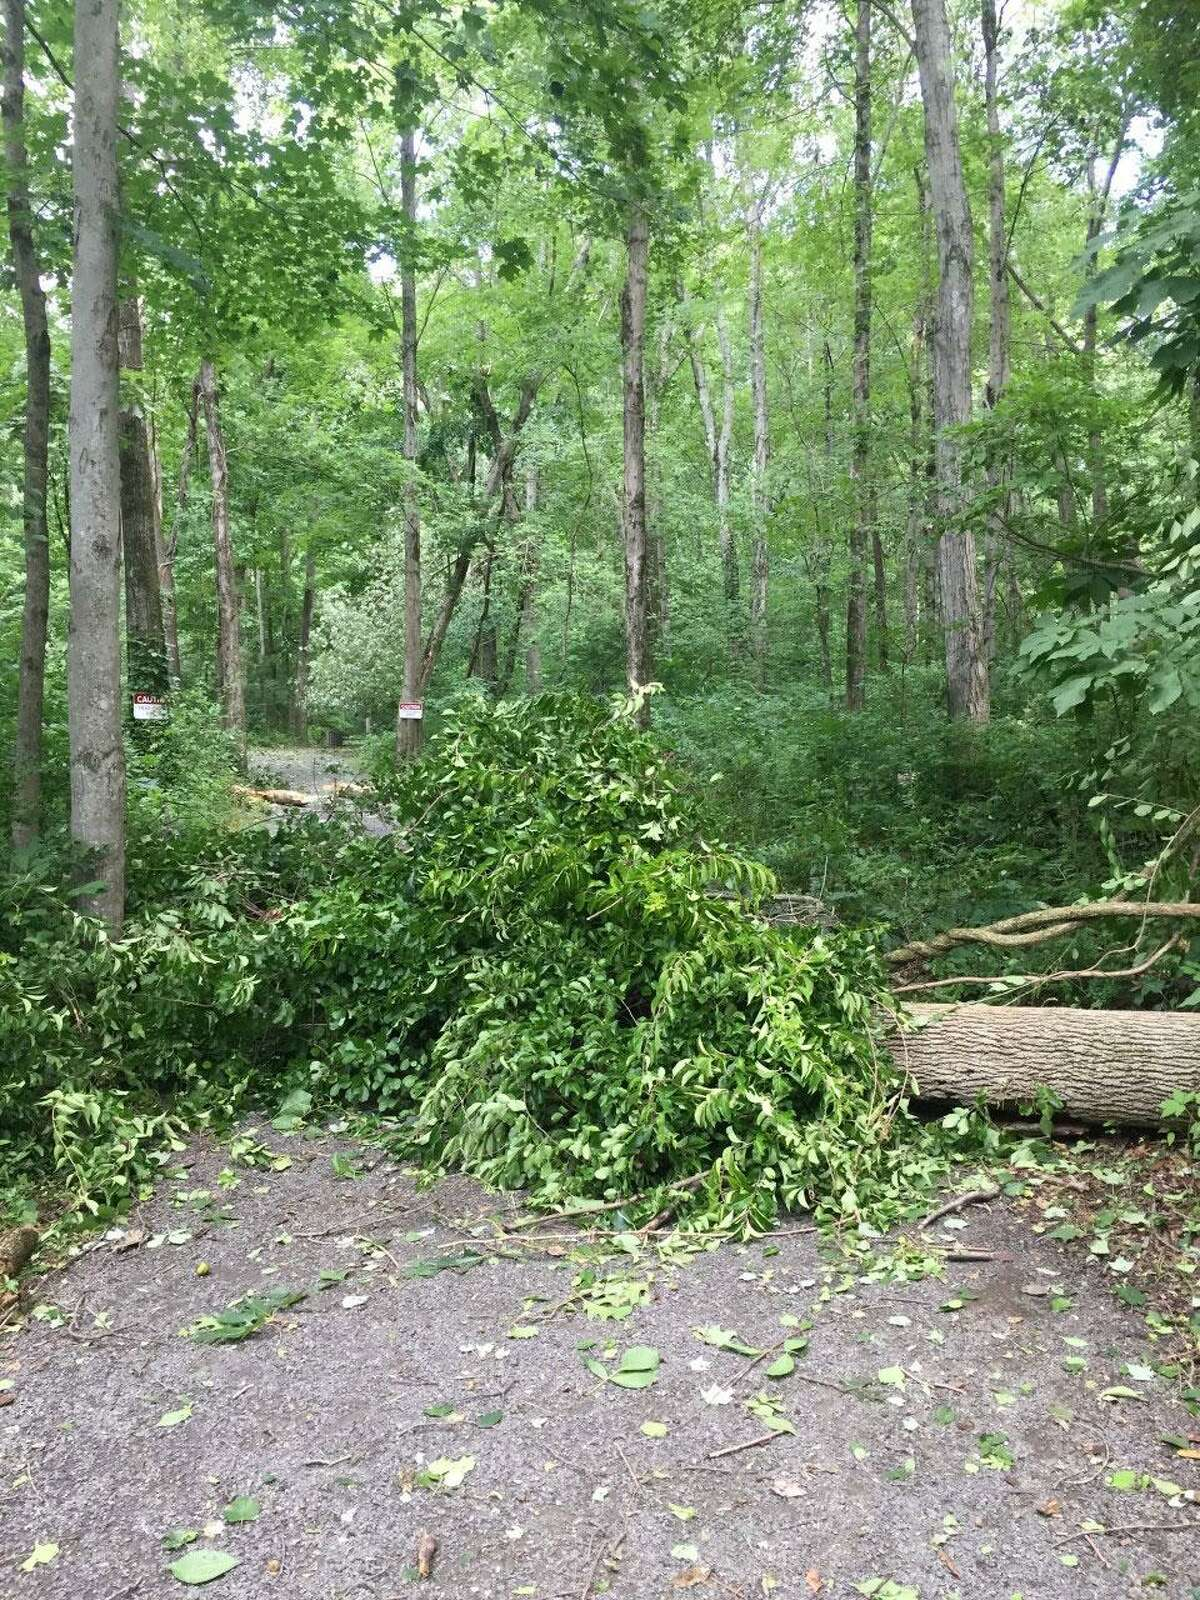 One of the downed trees cleared by NRVT volunteers in Wilton following Tropical Storm Isaias, which hit the region on Tuesday, Aug. 4.